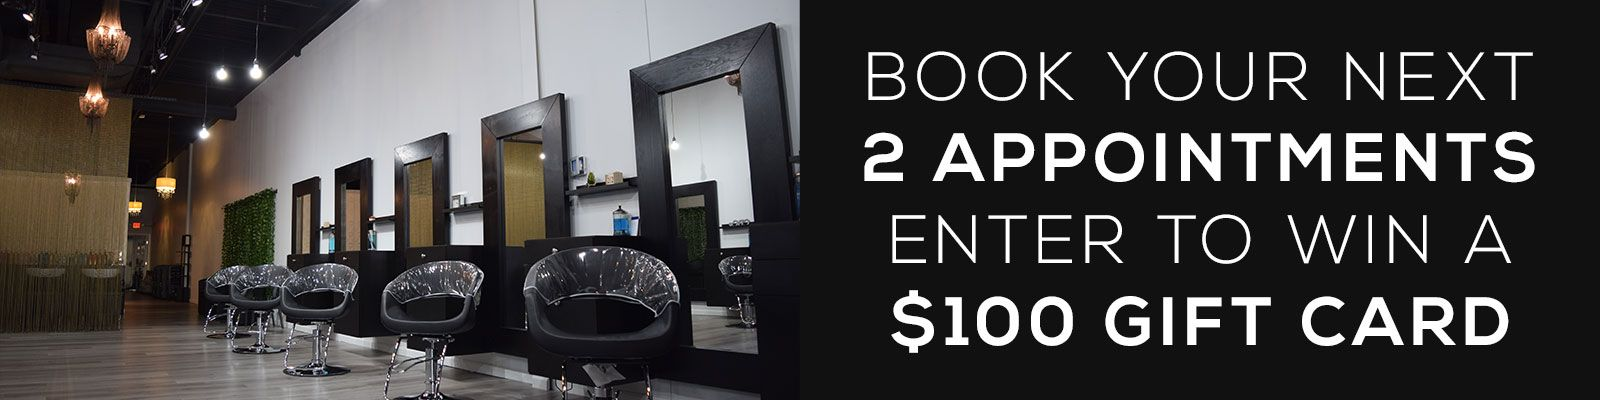 Book next 2 appointments to win gift card